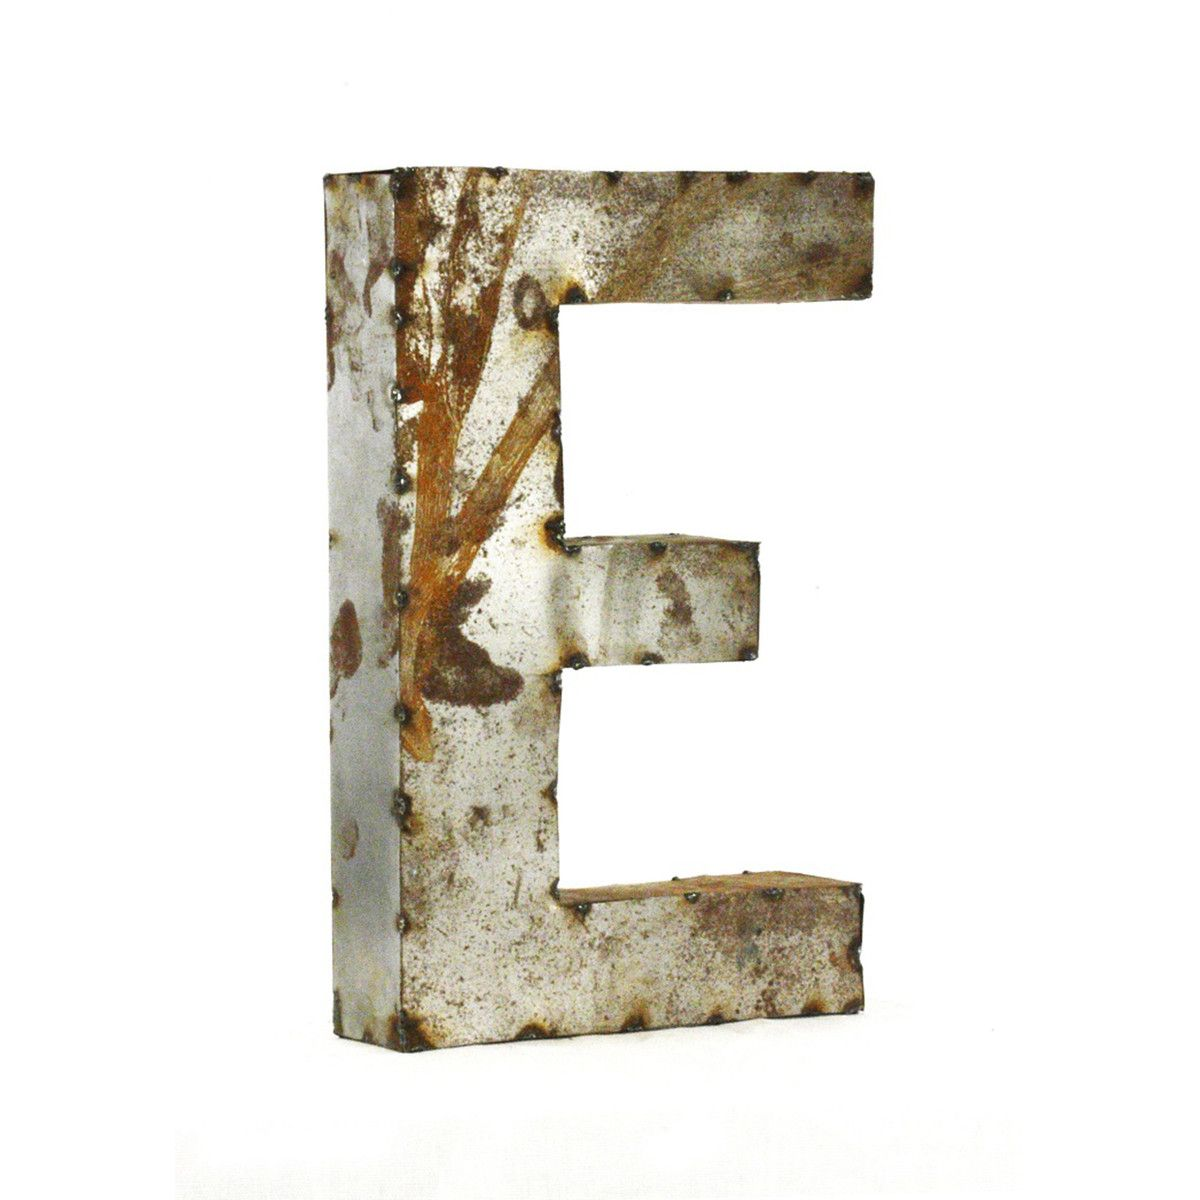 Small Rustic Metal Letters Metal Letter E  You Could Make A Great Monogram Display With